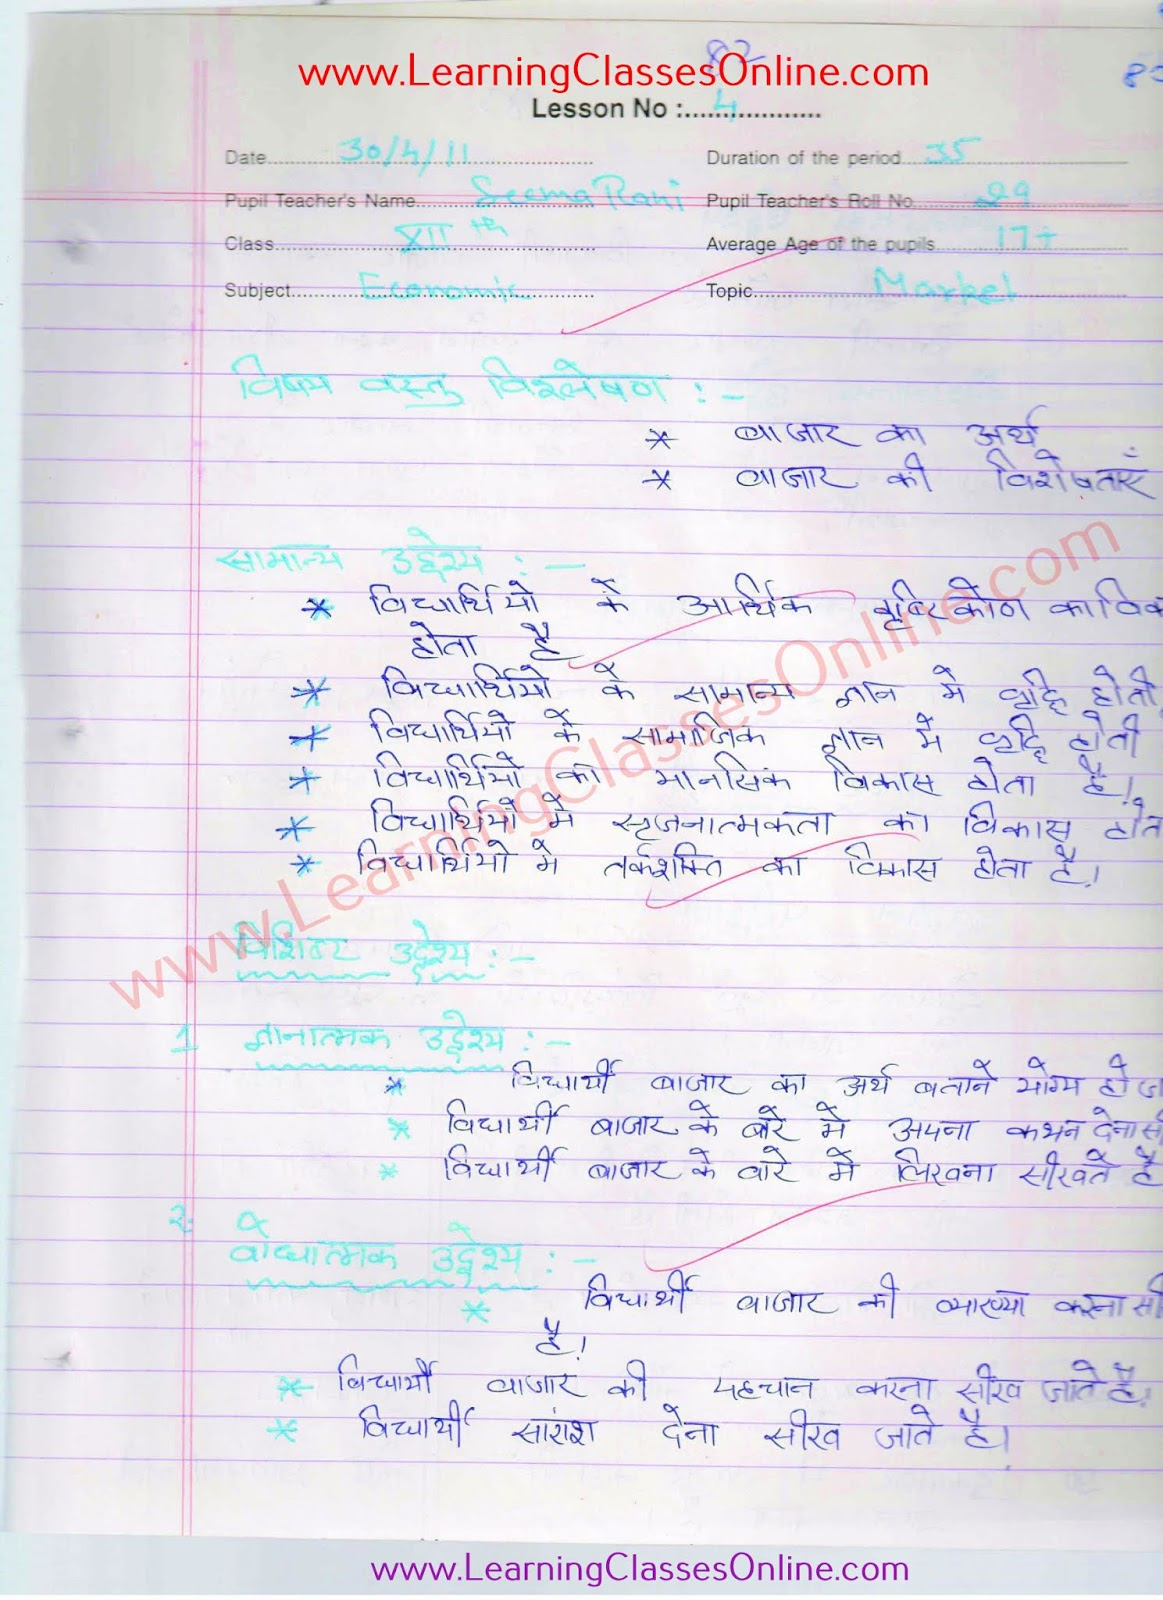 Lesson Plan for Economics Class 10 in Hindi free download pdf on Market ( Bazaar Topic)